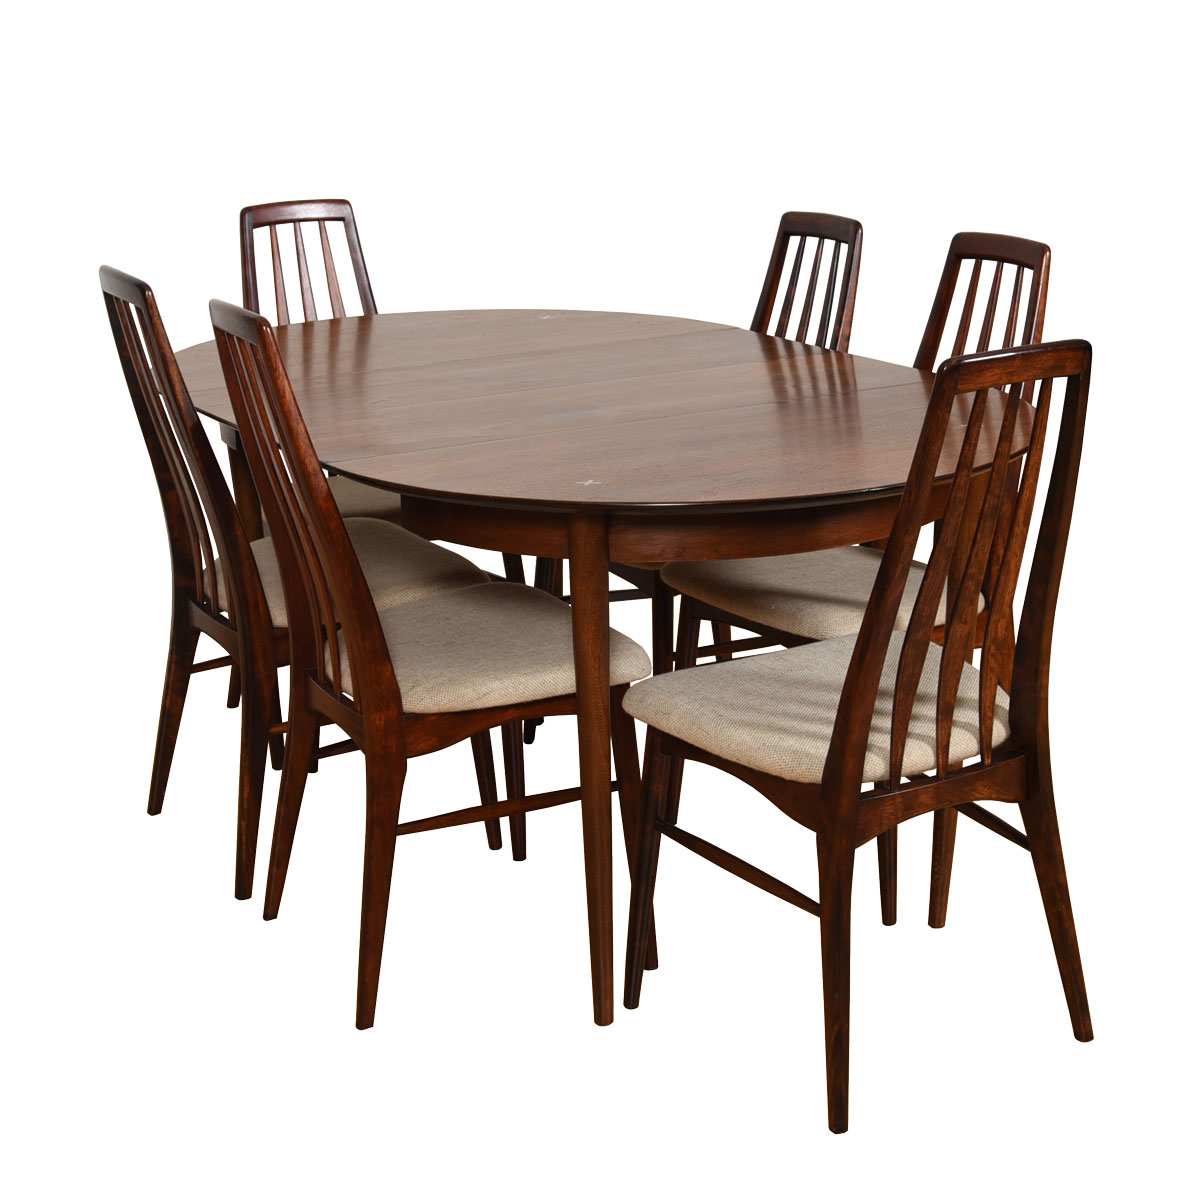 Mid Century Walnut Round Expanding Dining Table by American of Martinsville